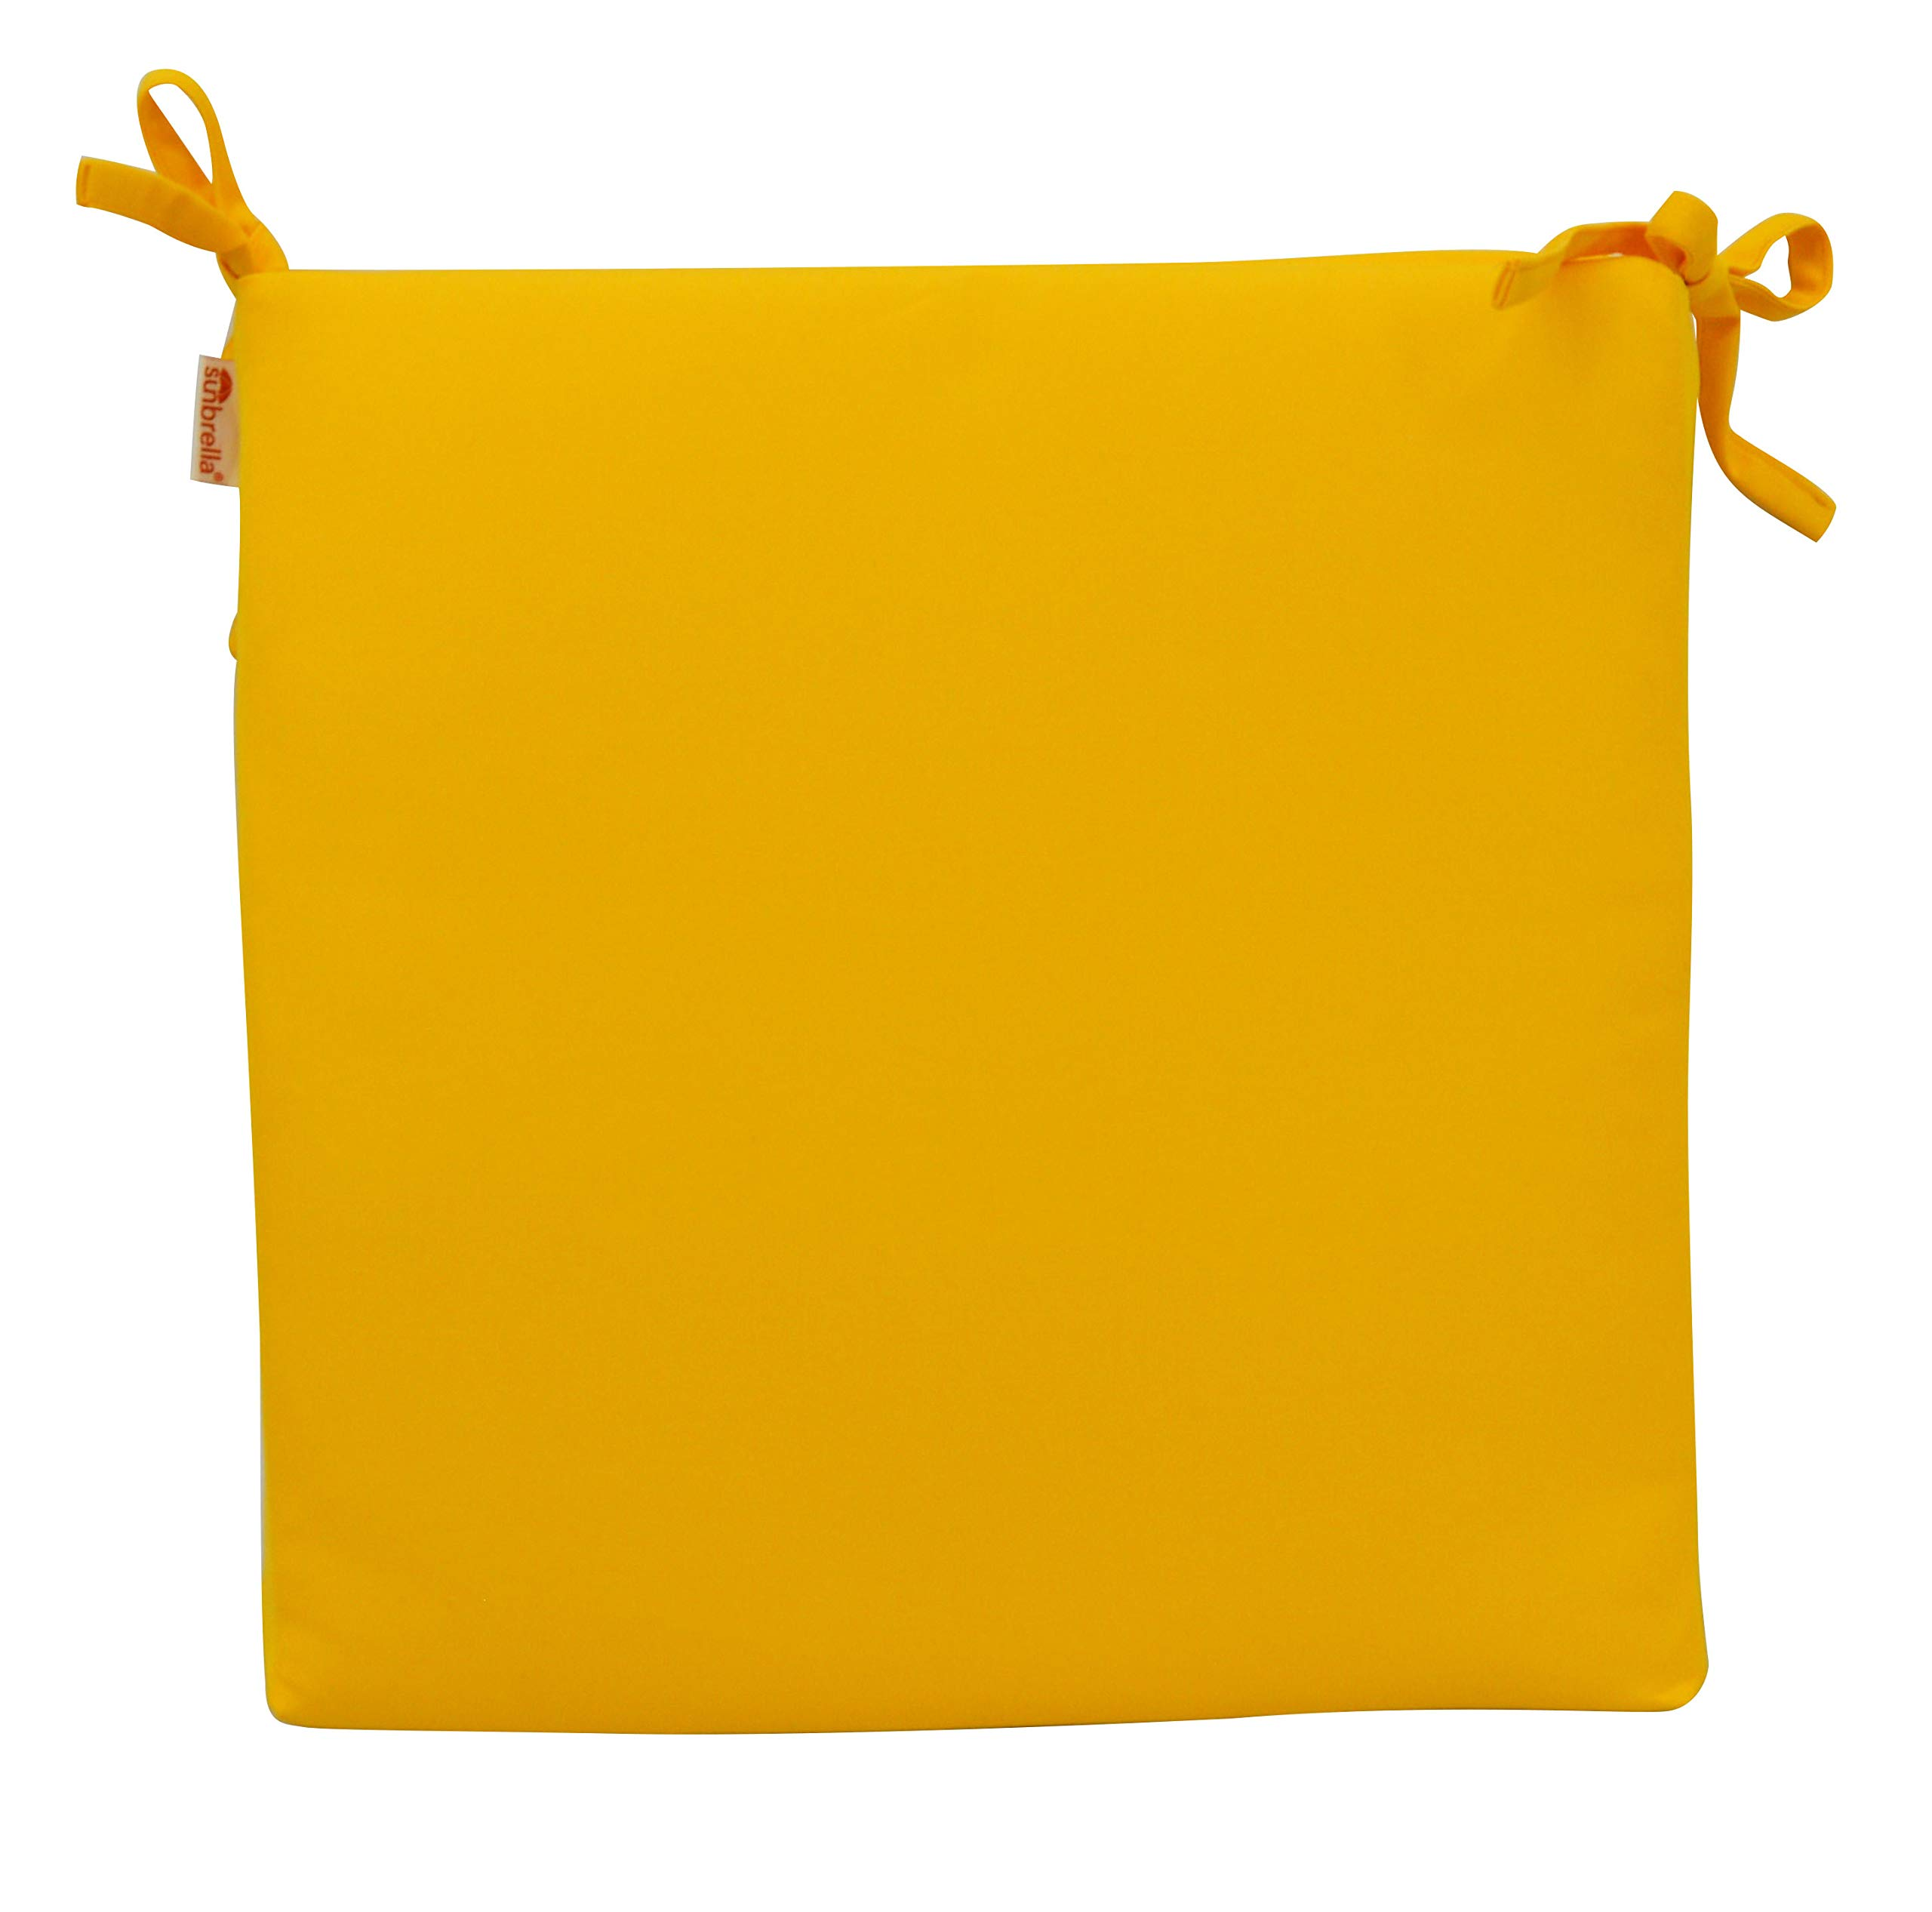 """RSH Décor Indoor/Outdoor Sunbrella Canvas Sunflower Yellow 2'' Foam Seat Cushion with Ties for Dining/Patio Chairs - Choose Size (19"""" x 18"""")"""